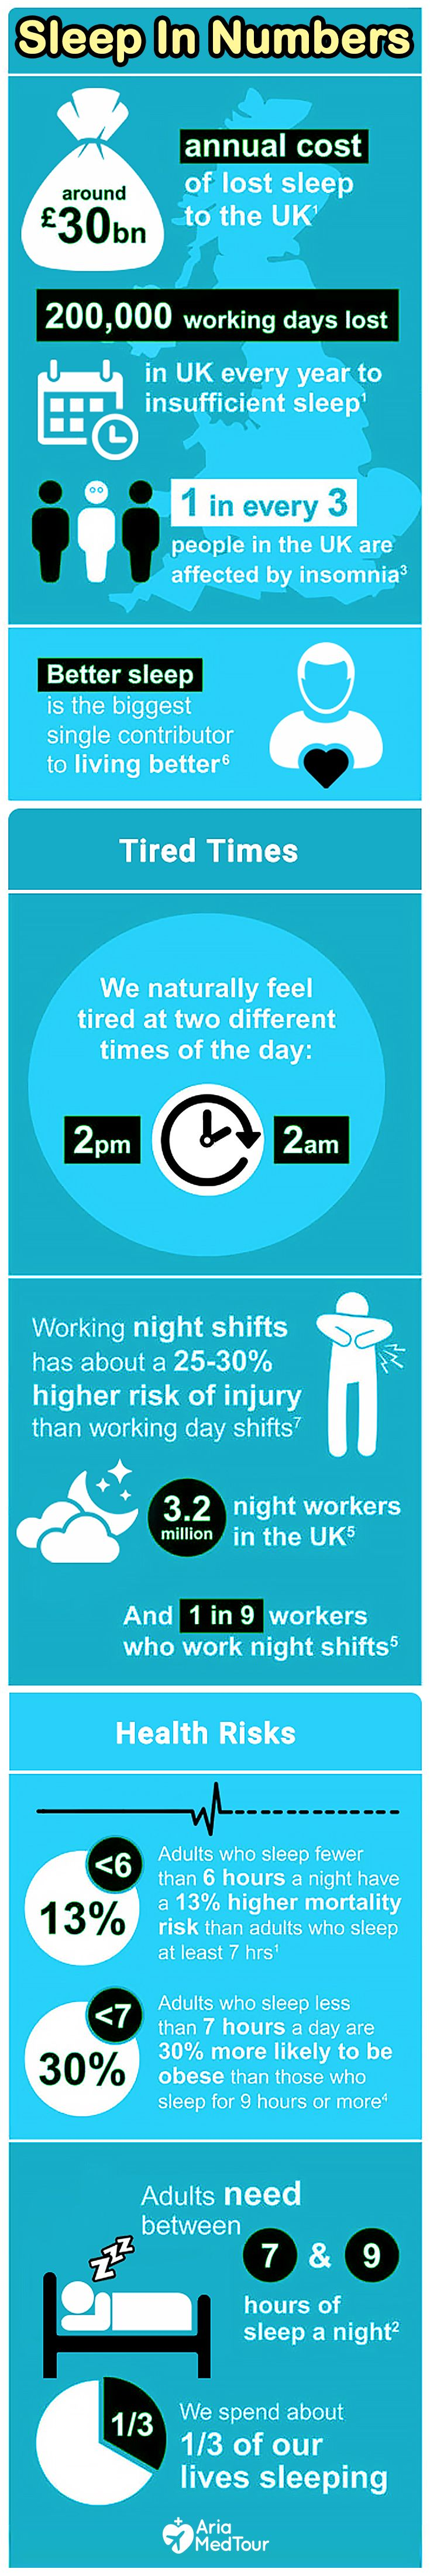 Learn more about the importance of Sleep before taking